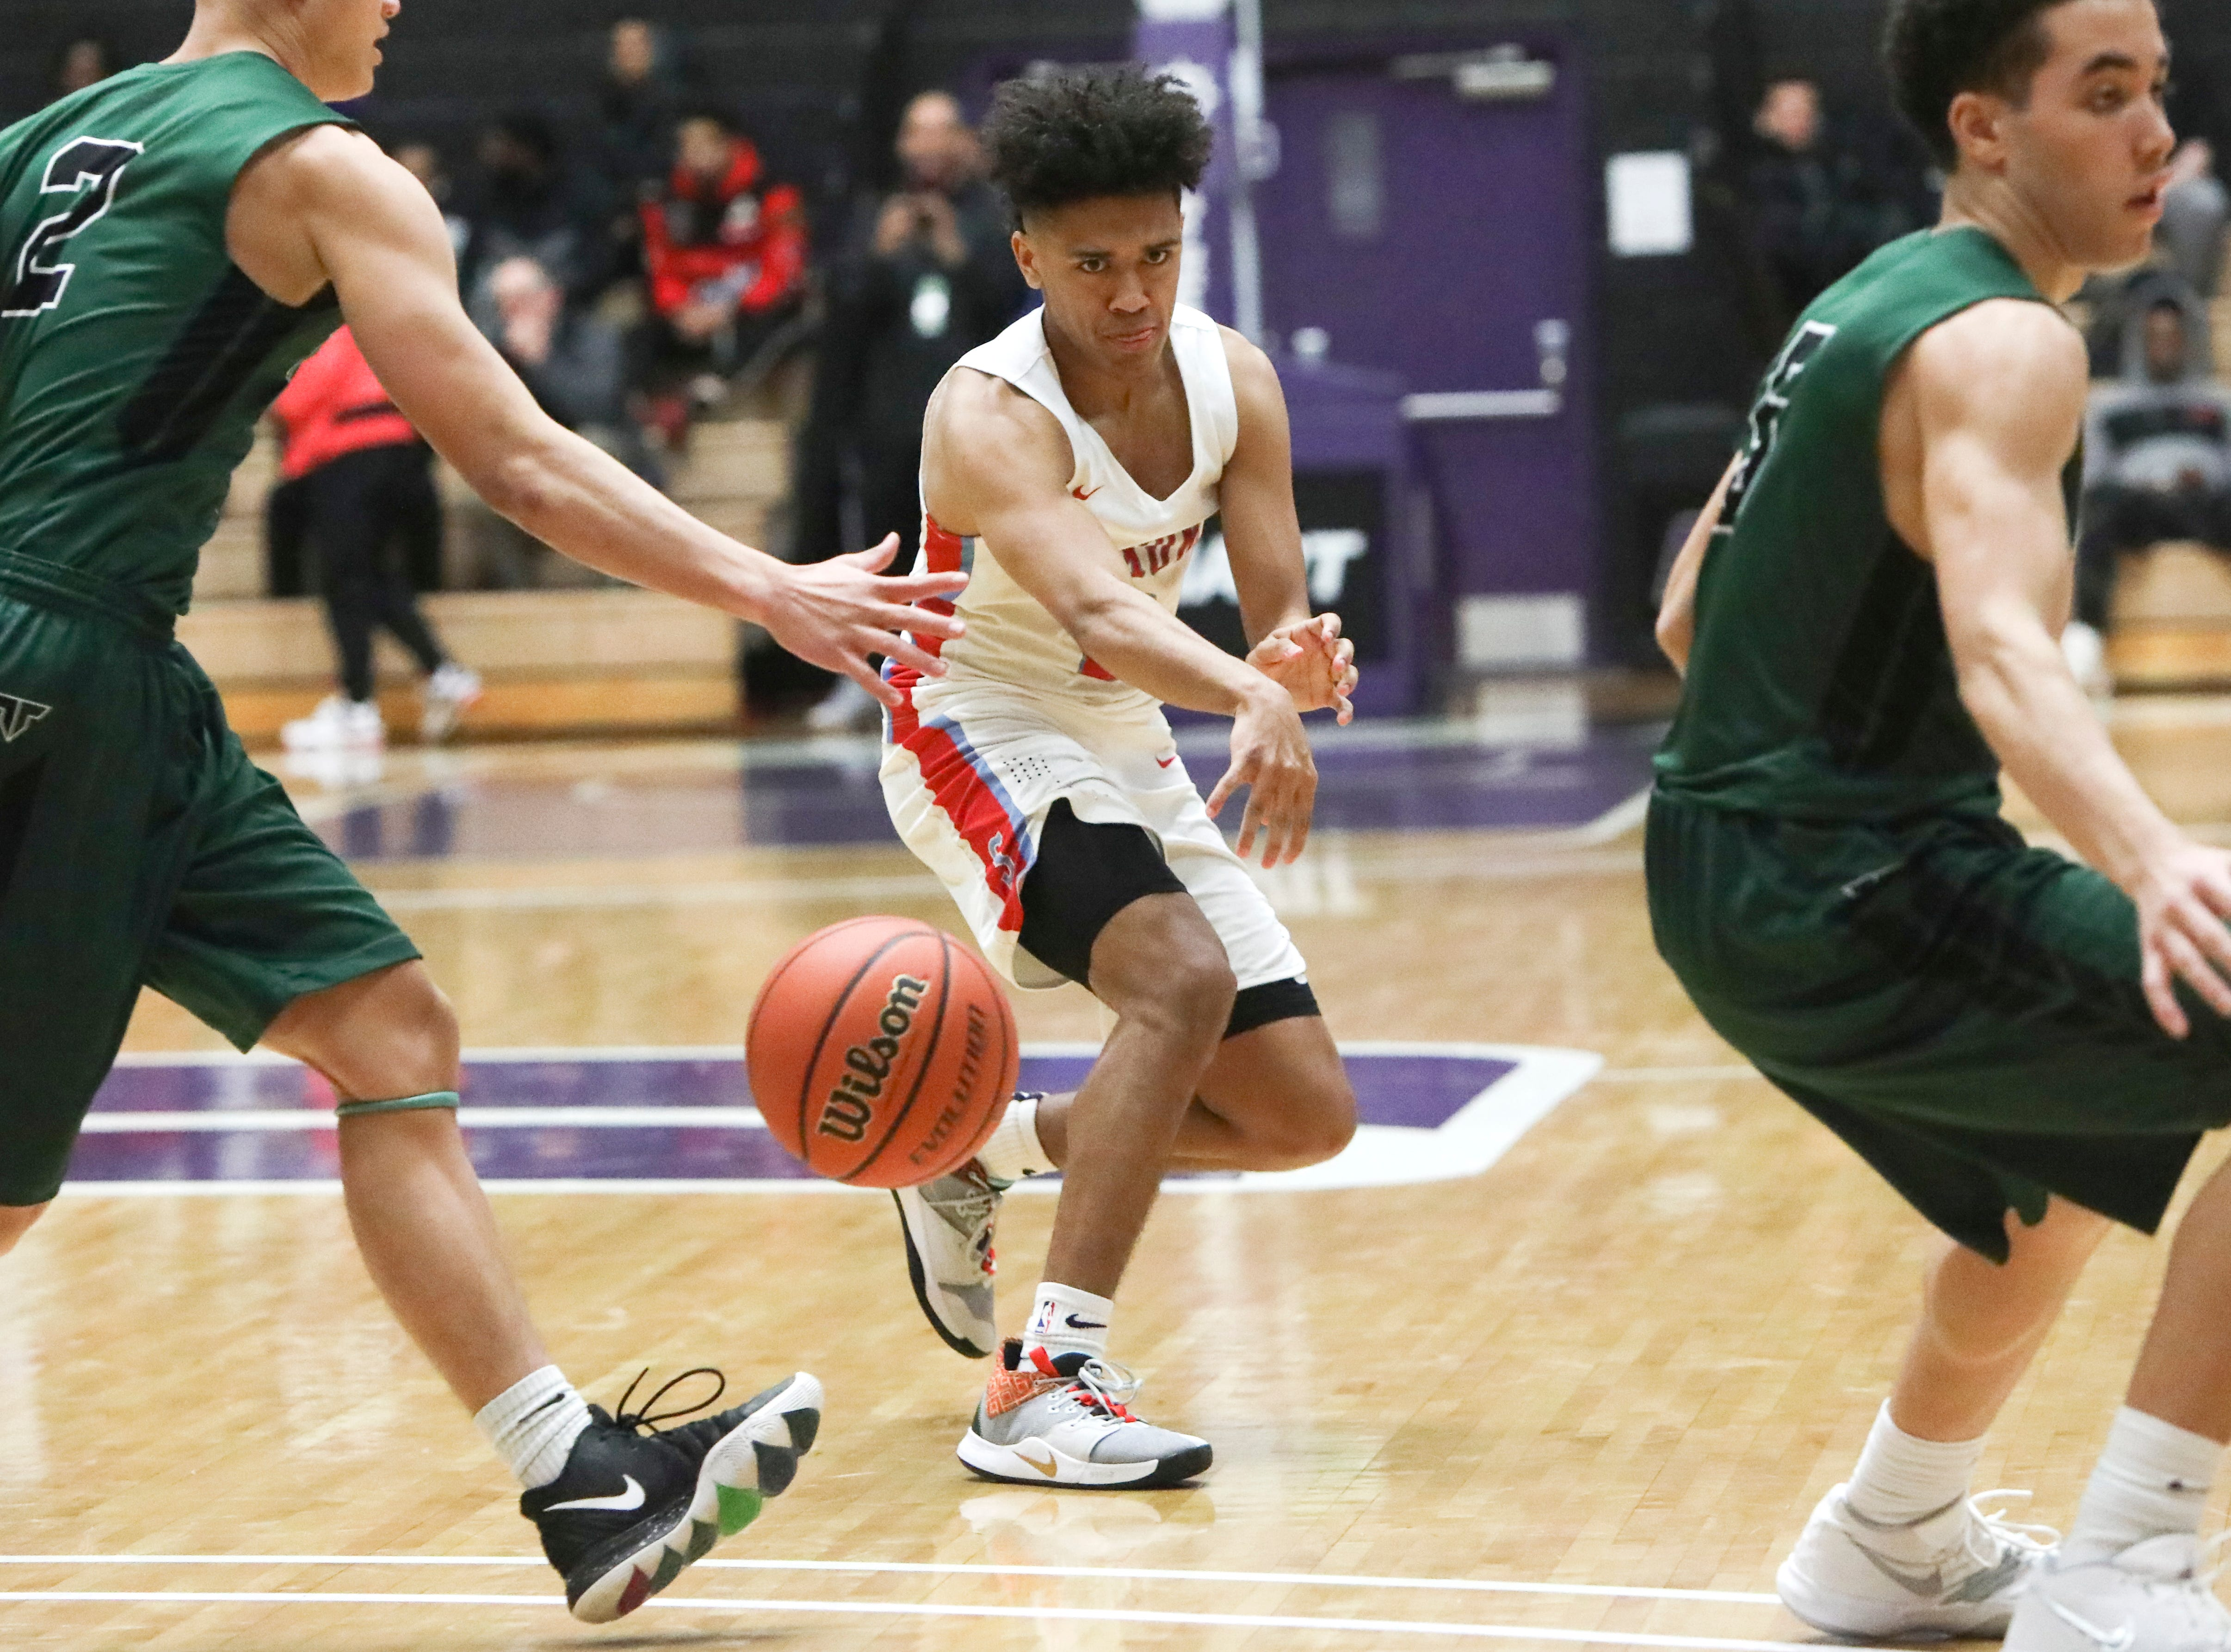 South Salem's Jaden Nielsen-Skinner (2) passes to a teammate during the OSAA 6A boys basketball state tournament quarterfinal against Tigard on Wednesday, March 6 at Chiles Center.